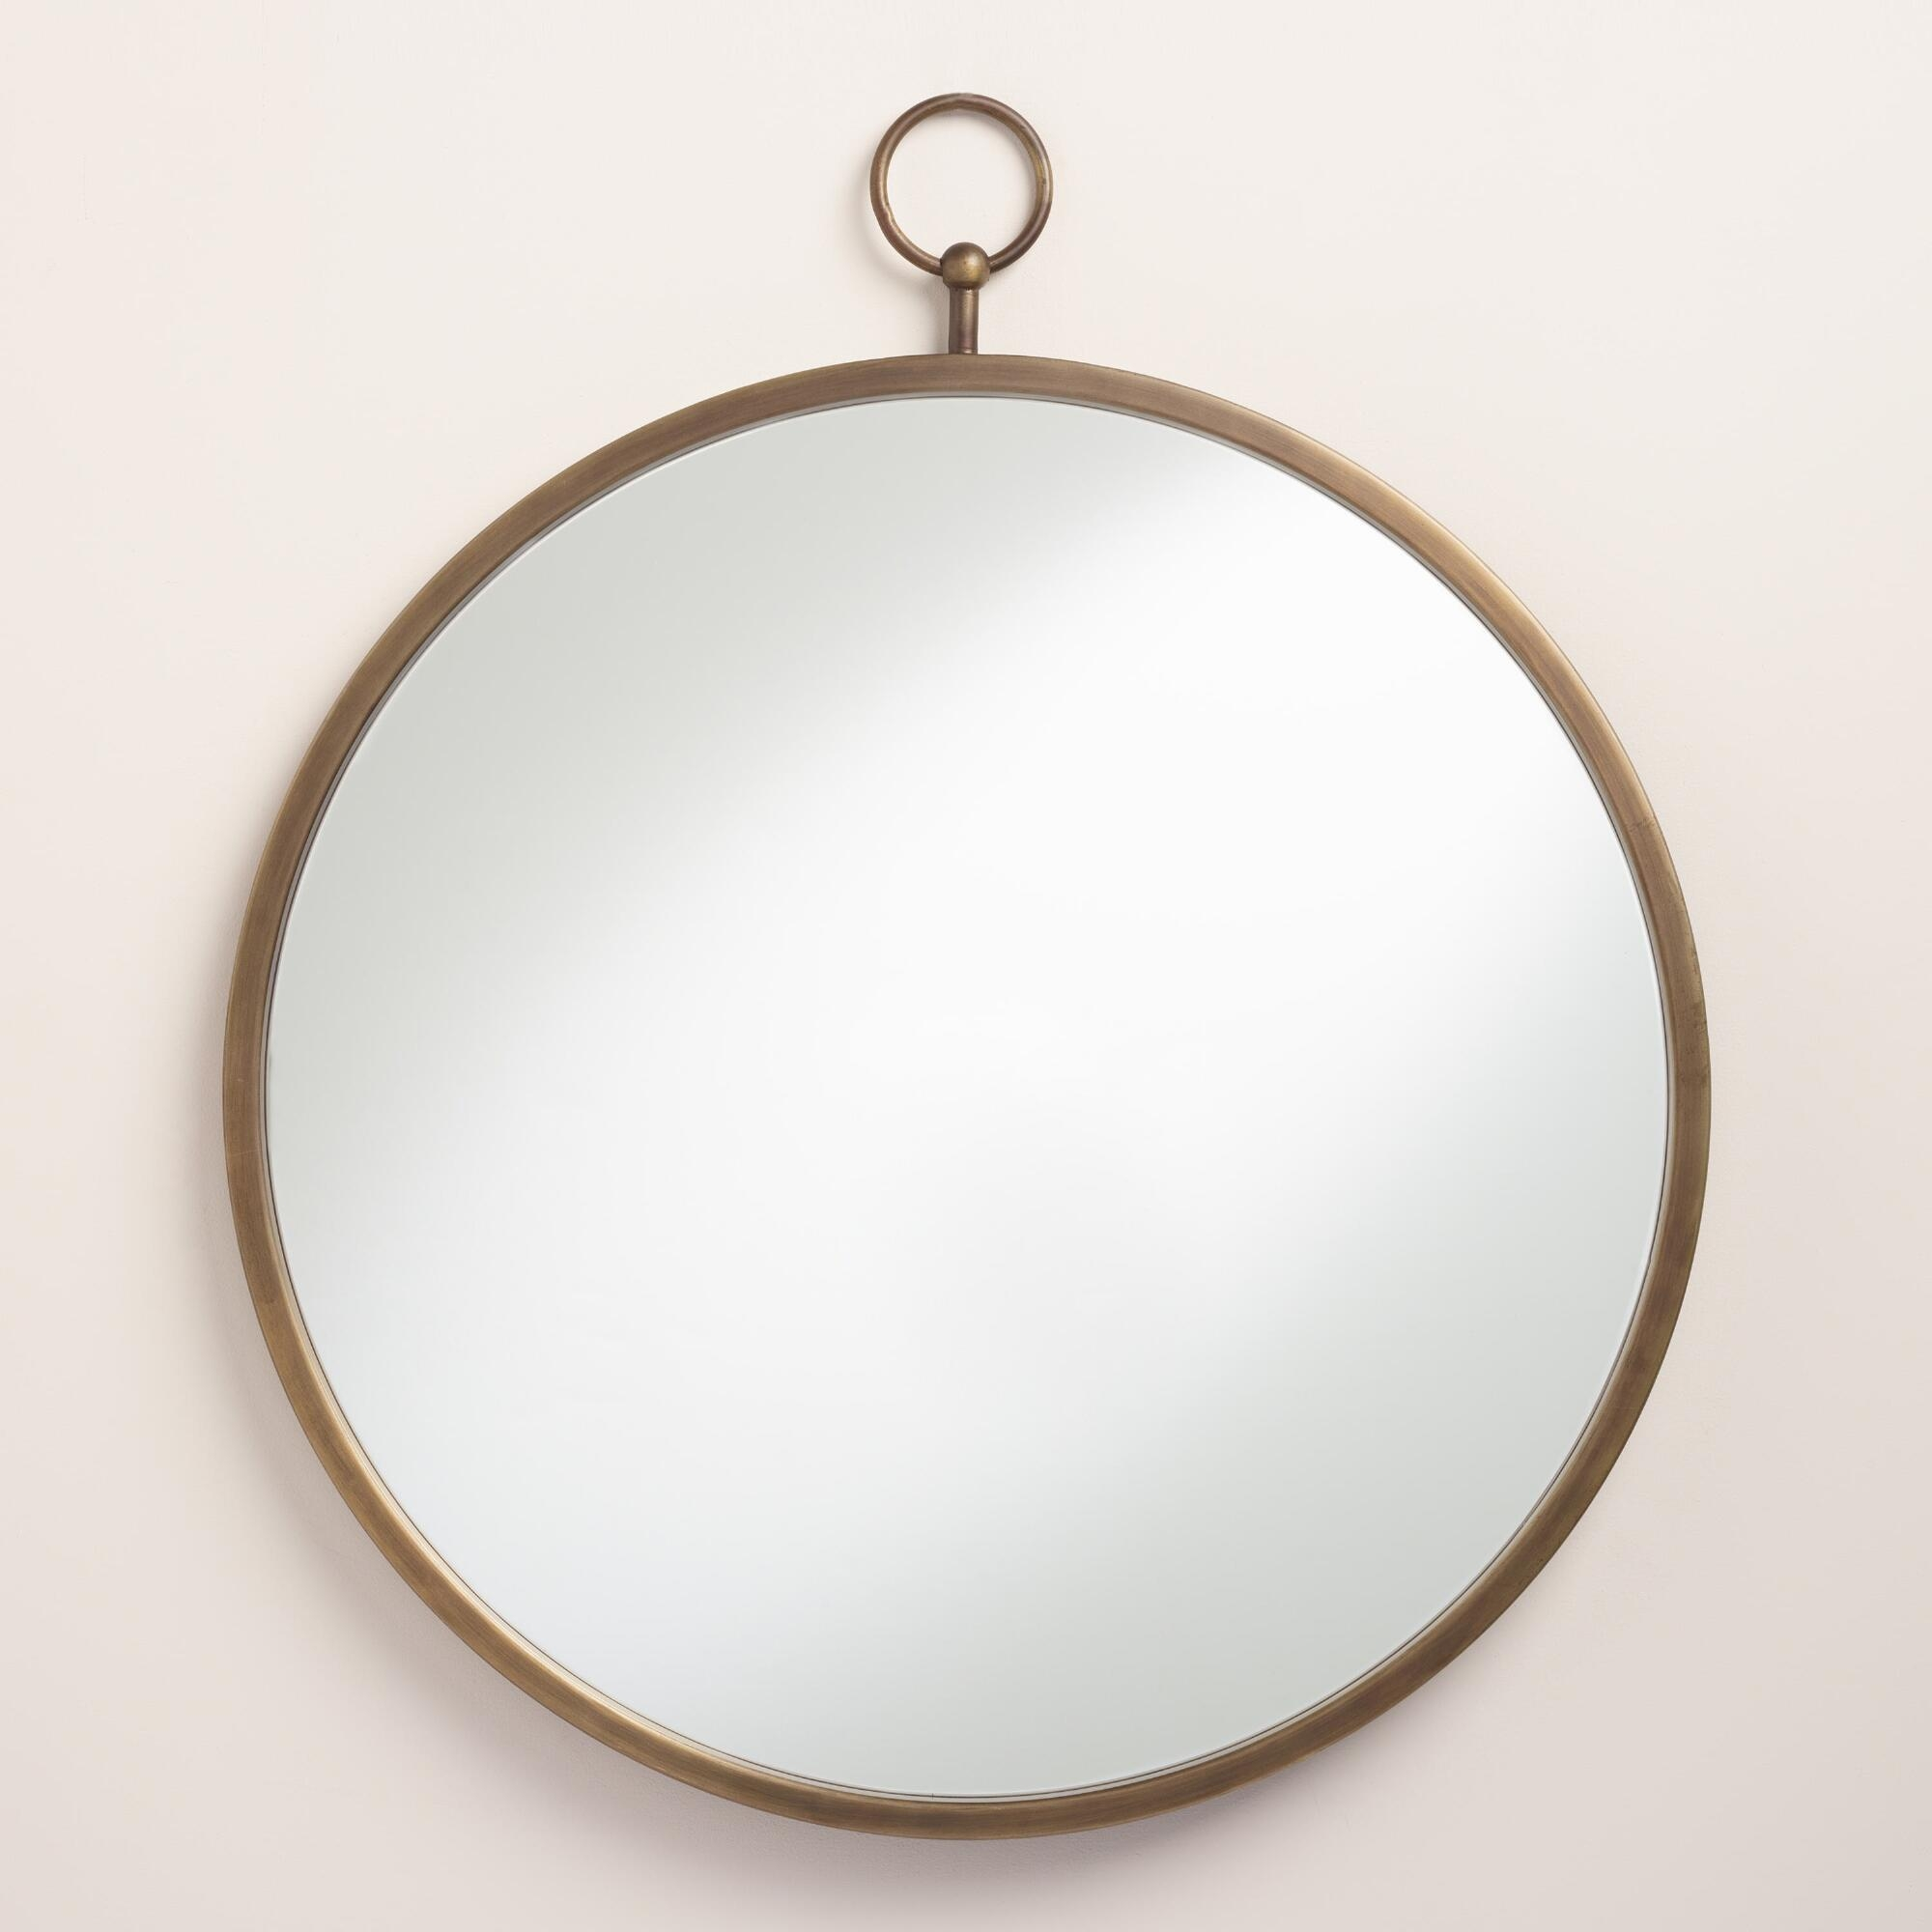 Brass Metal Loop Mirror Round Mirrors And Antique Brass In Antique Round Mirrors (View 8 of 15)